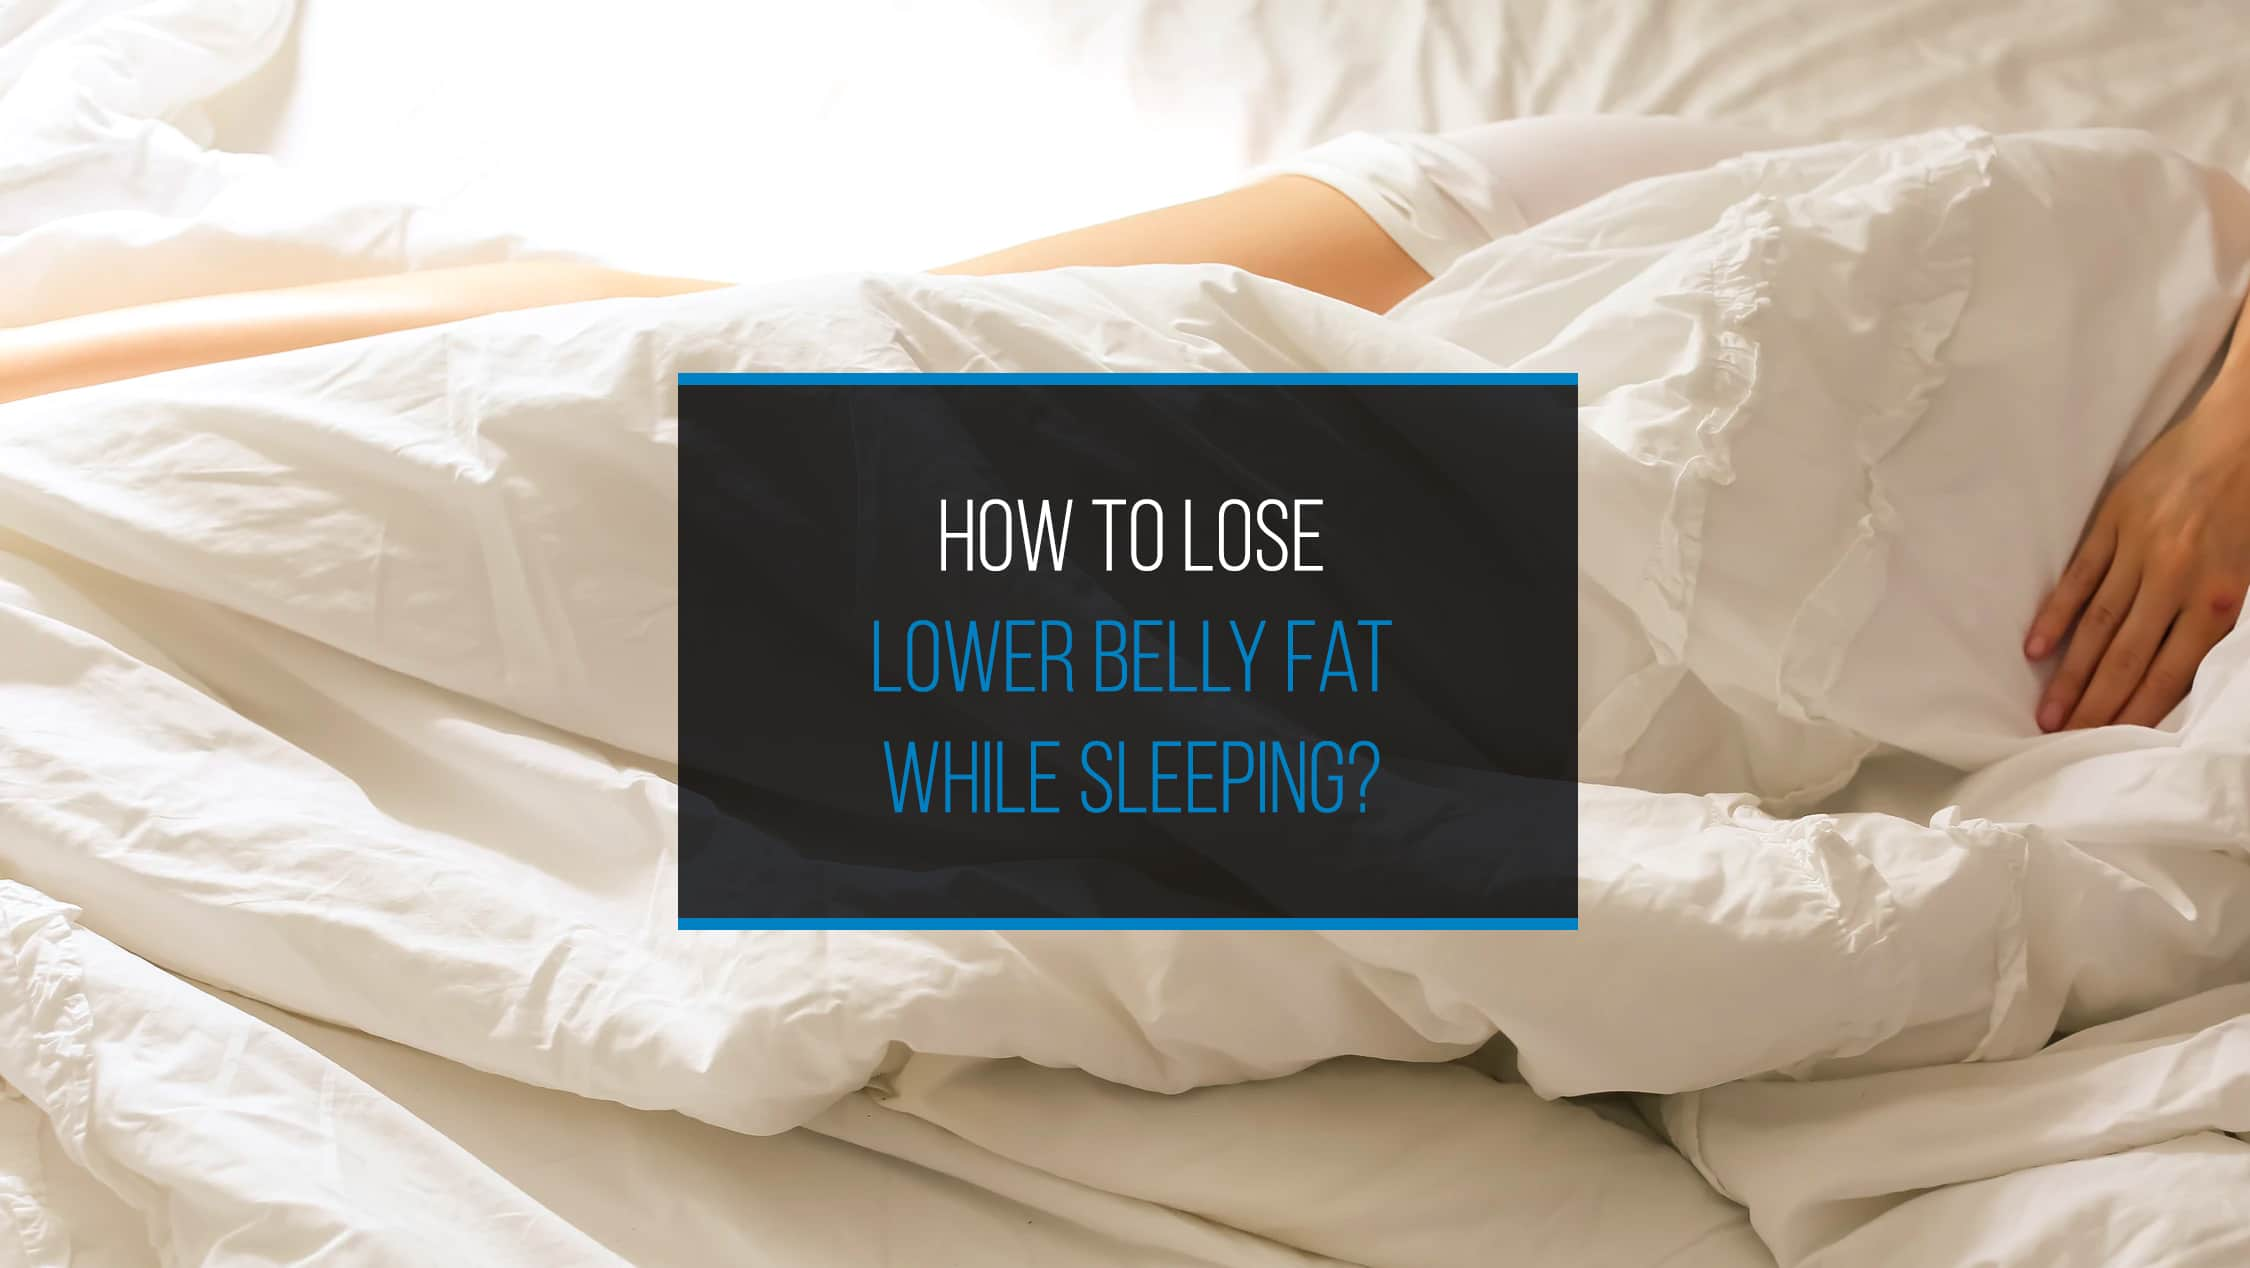 How to lose lower belly fat while sleeping